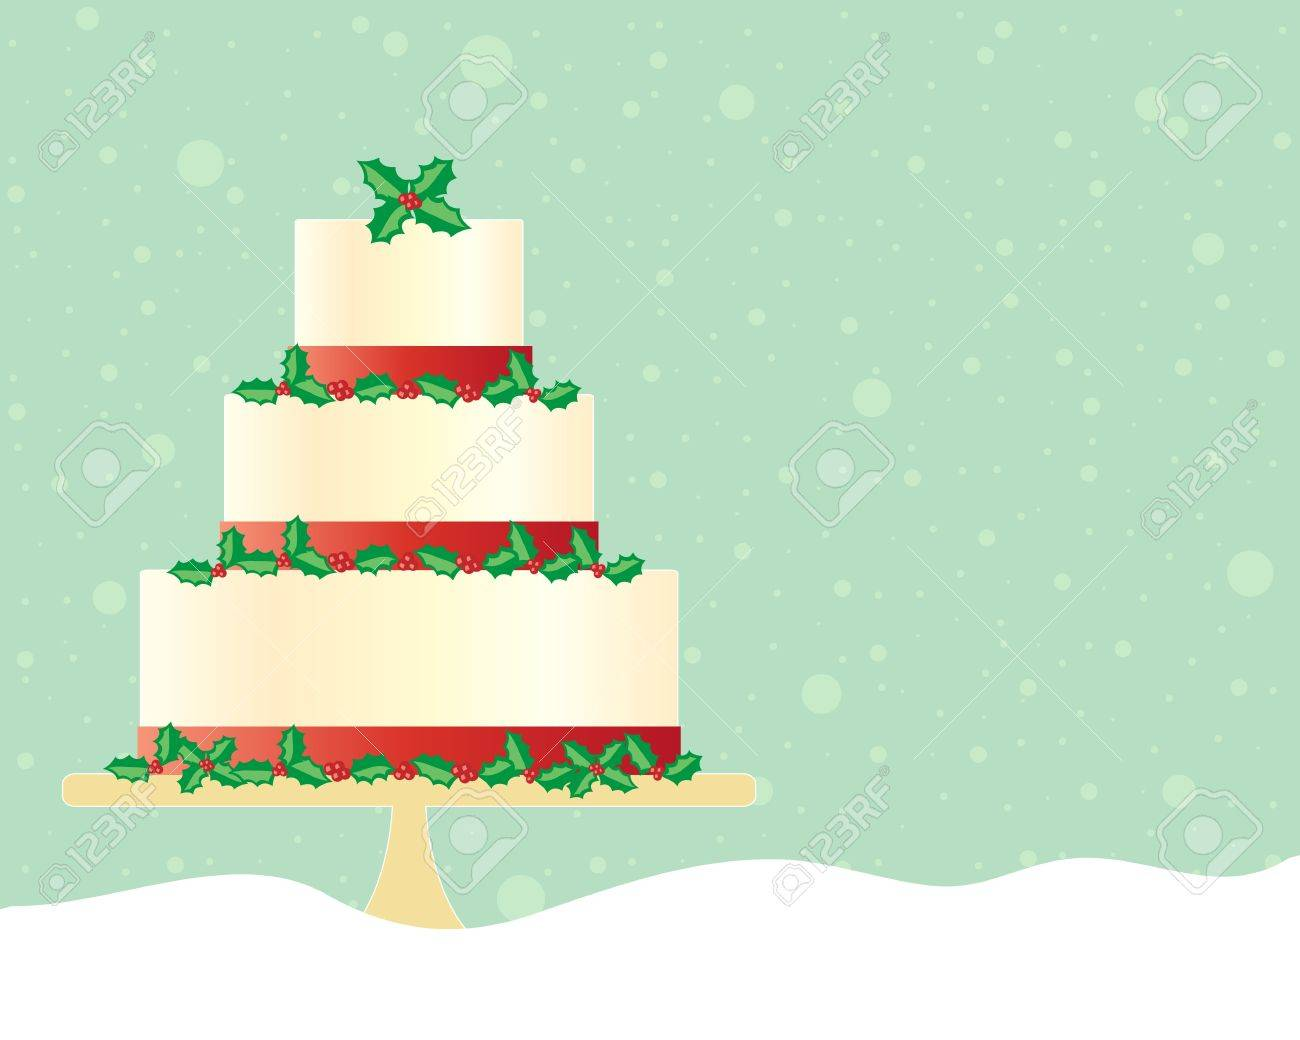 an illustration of a festive christmas cake in greeting card format decorated with red ribbon and seasonal holly with a green snowy background Stock Vector - 21859319